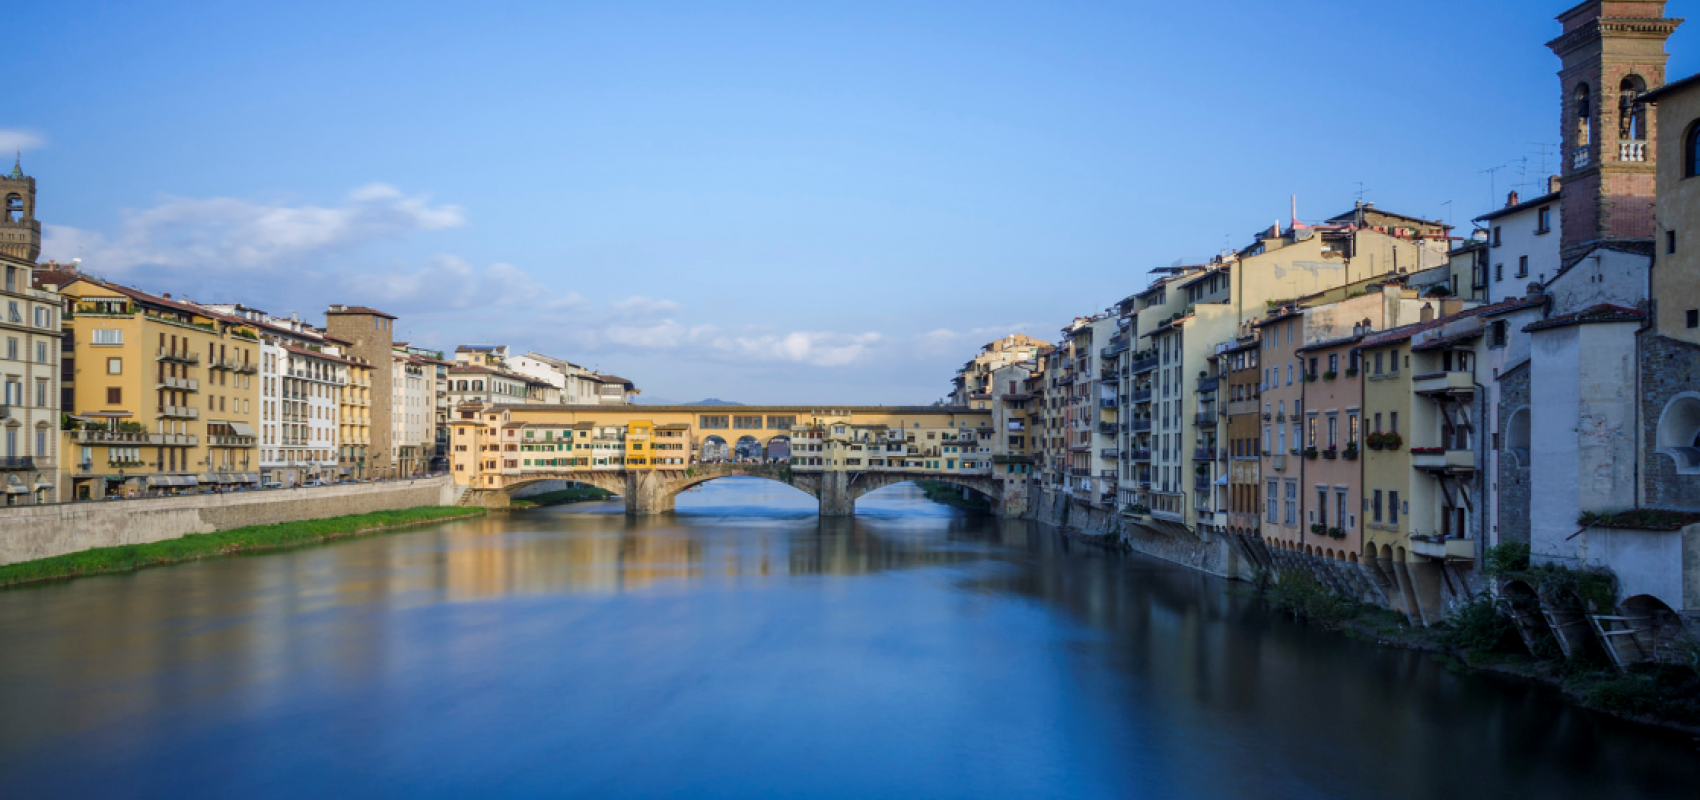 View of Florence from a bridge